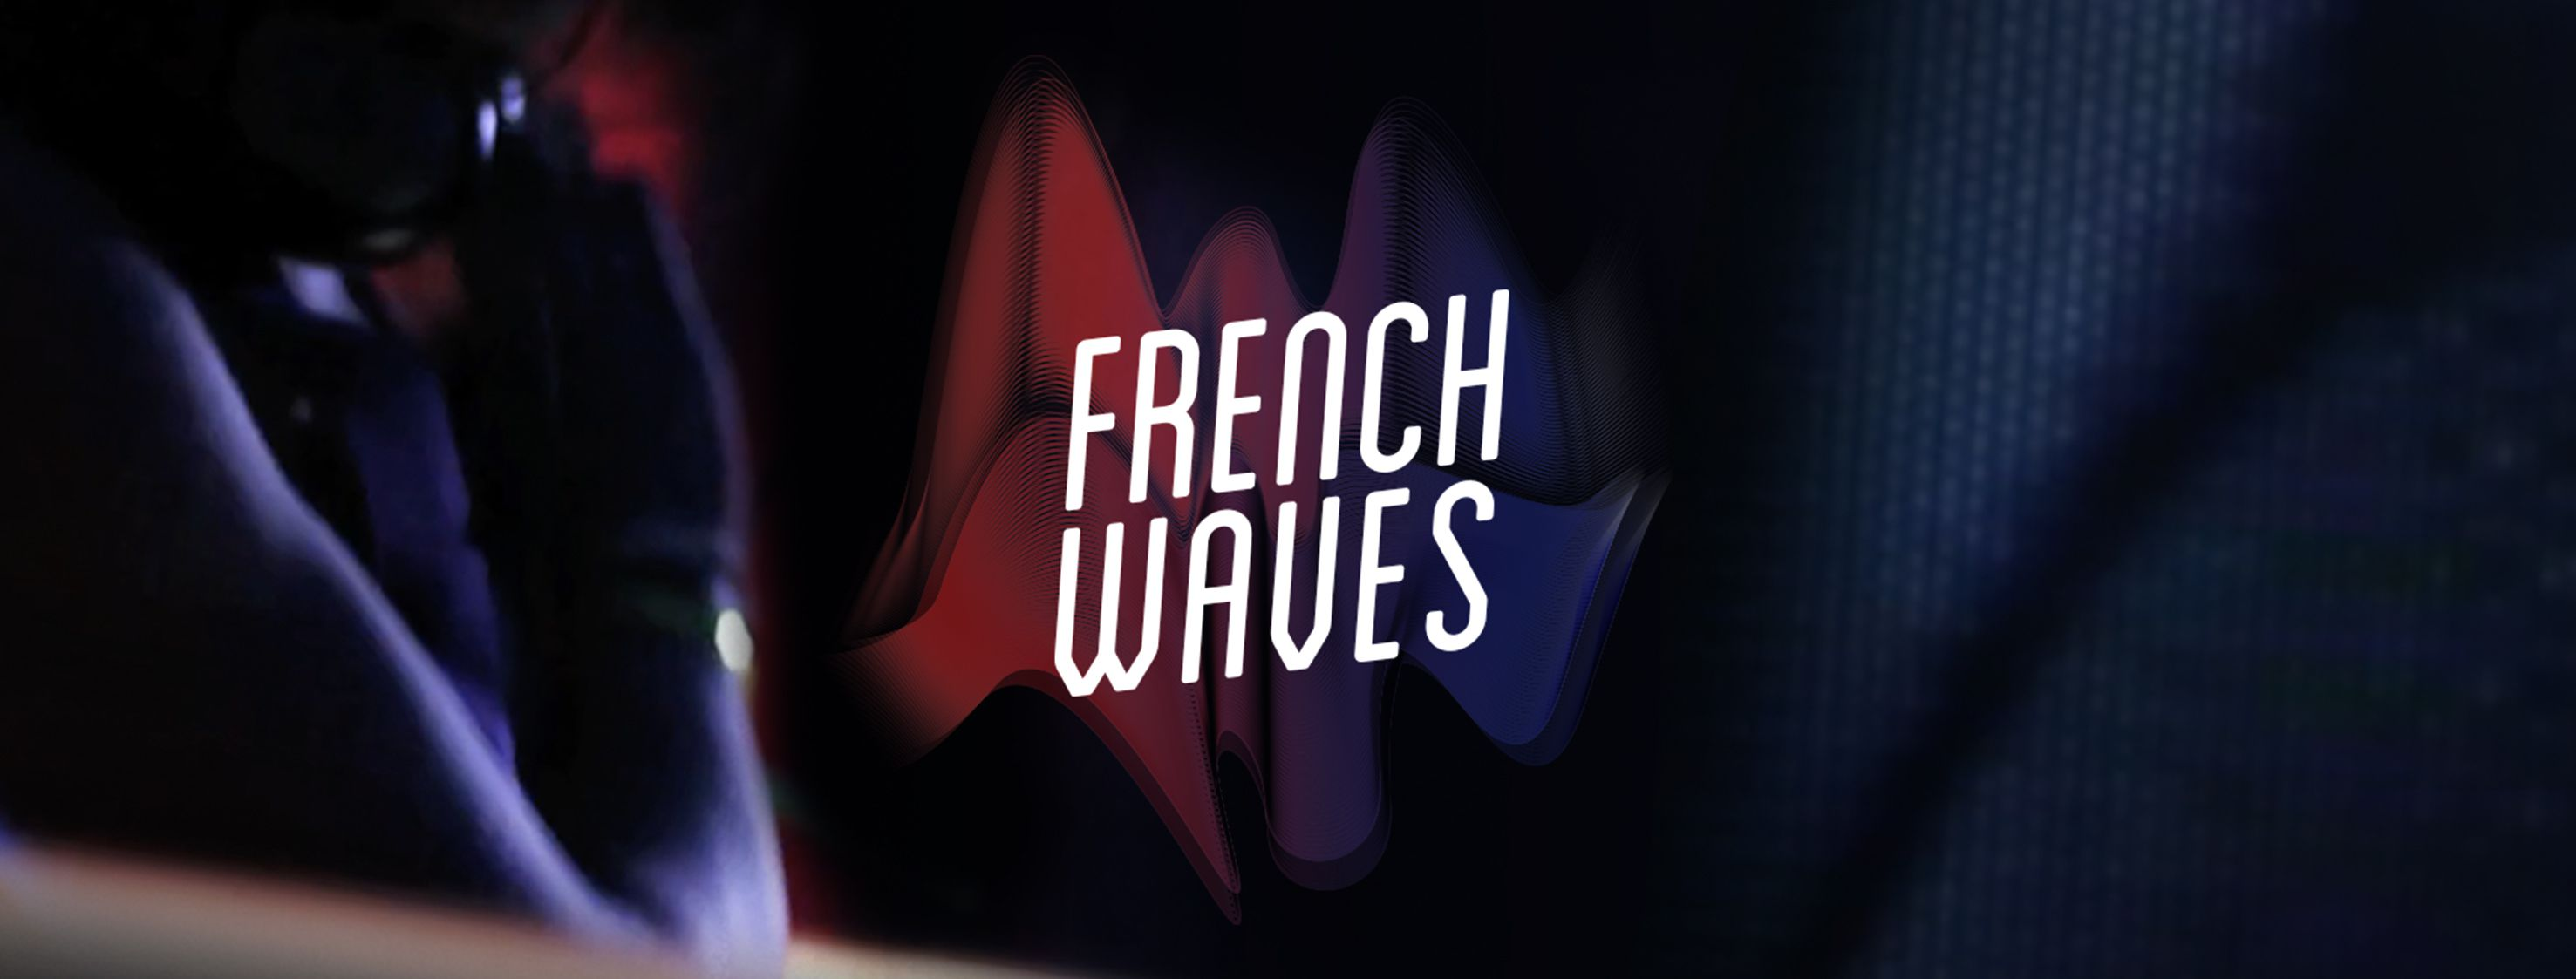 French Waves - Documentaire (2017)